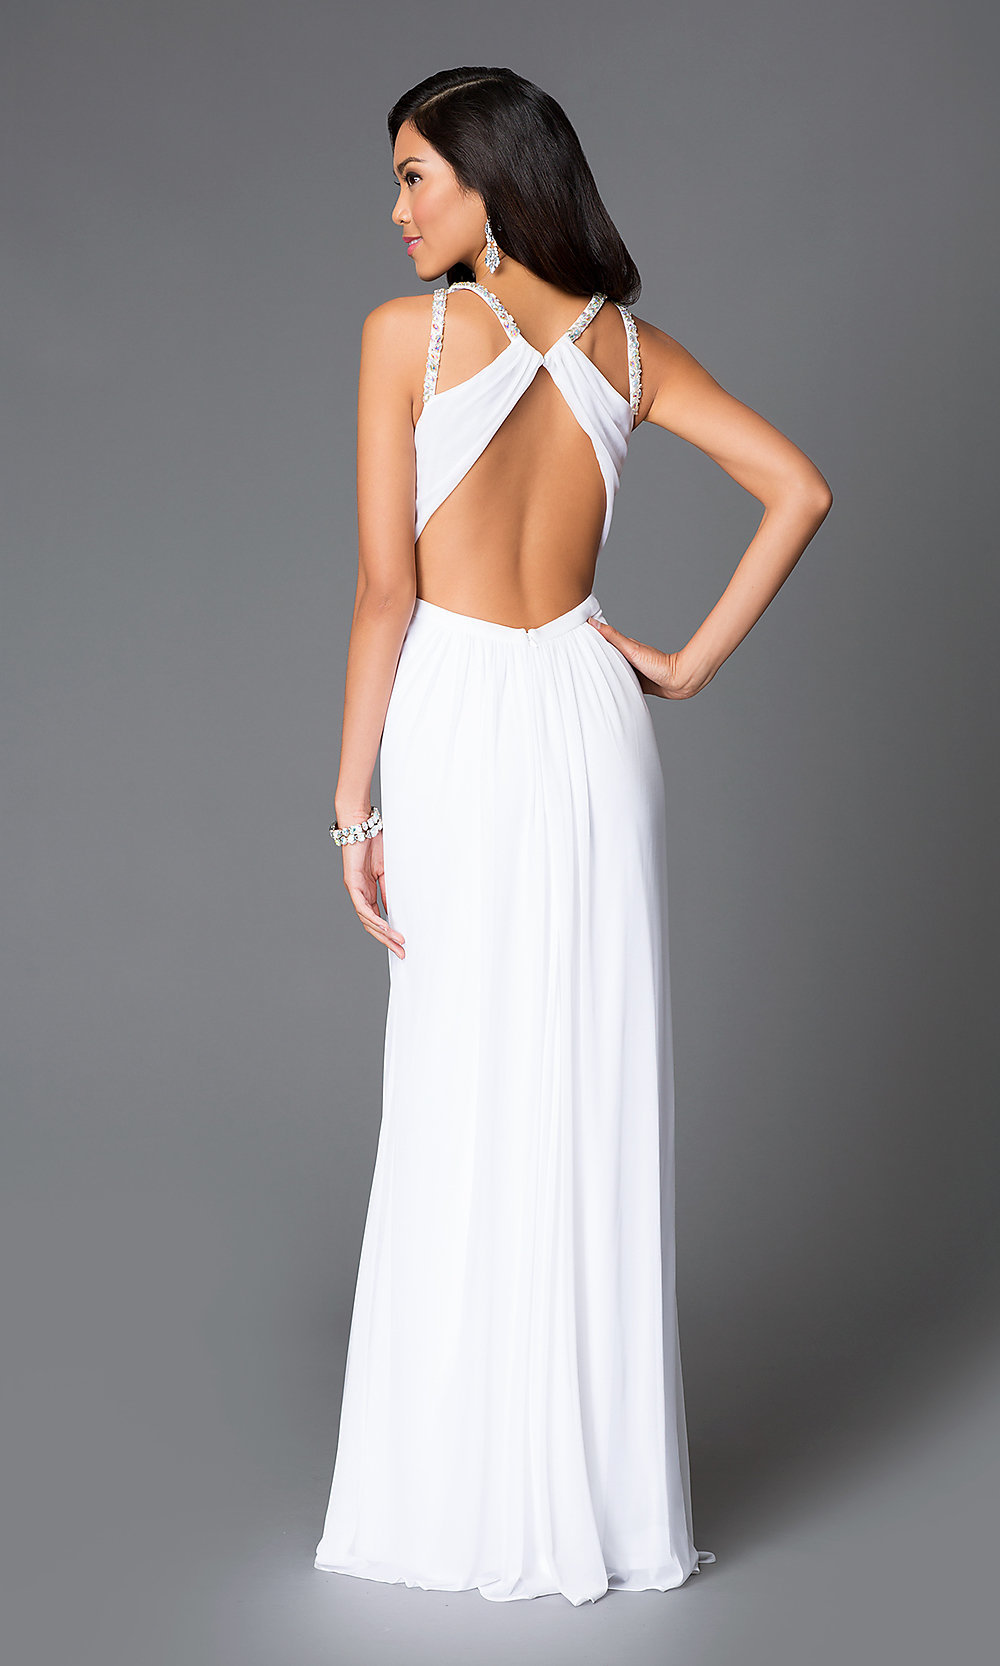 Long White High Neck Sheer Keyhole Dress Promgirl